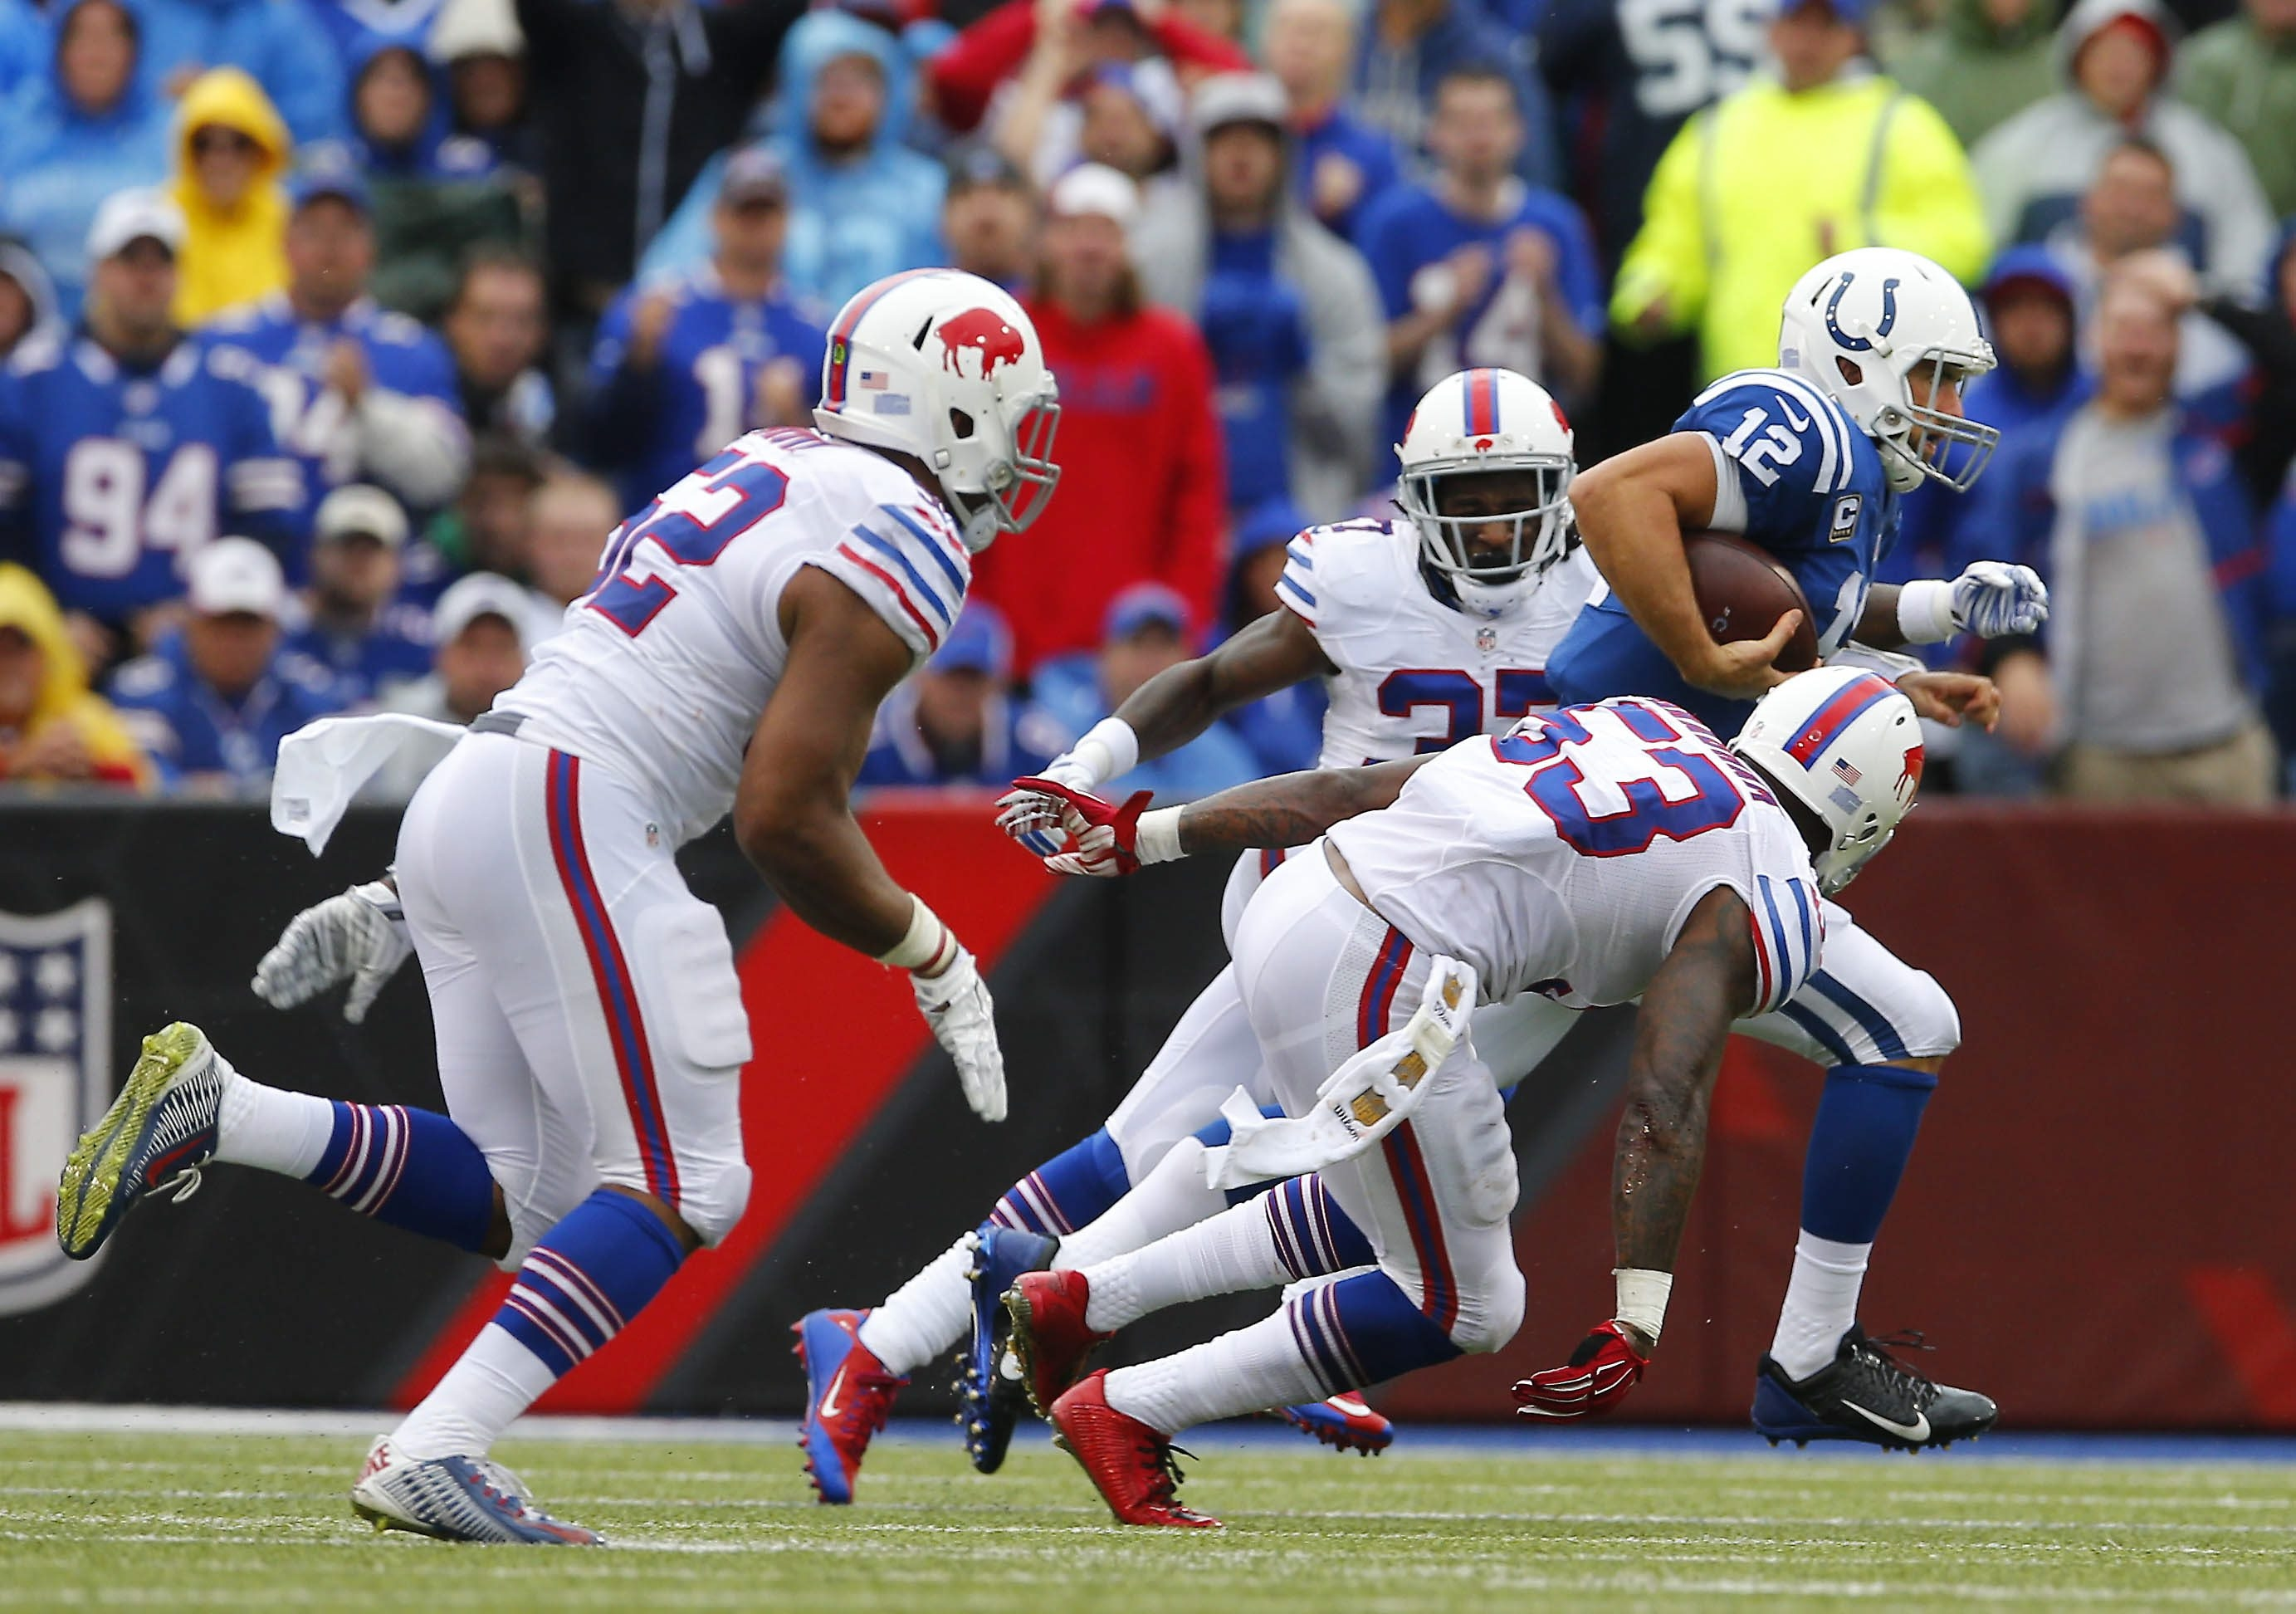 Colts quarterback Andrew Luck was under constant pressure from the Bills defensive front, which recorded only two sacks but helped create two interceptions.